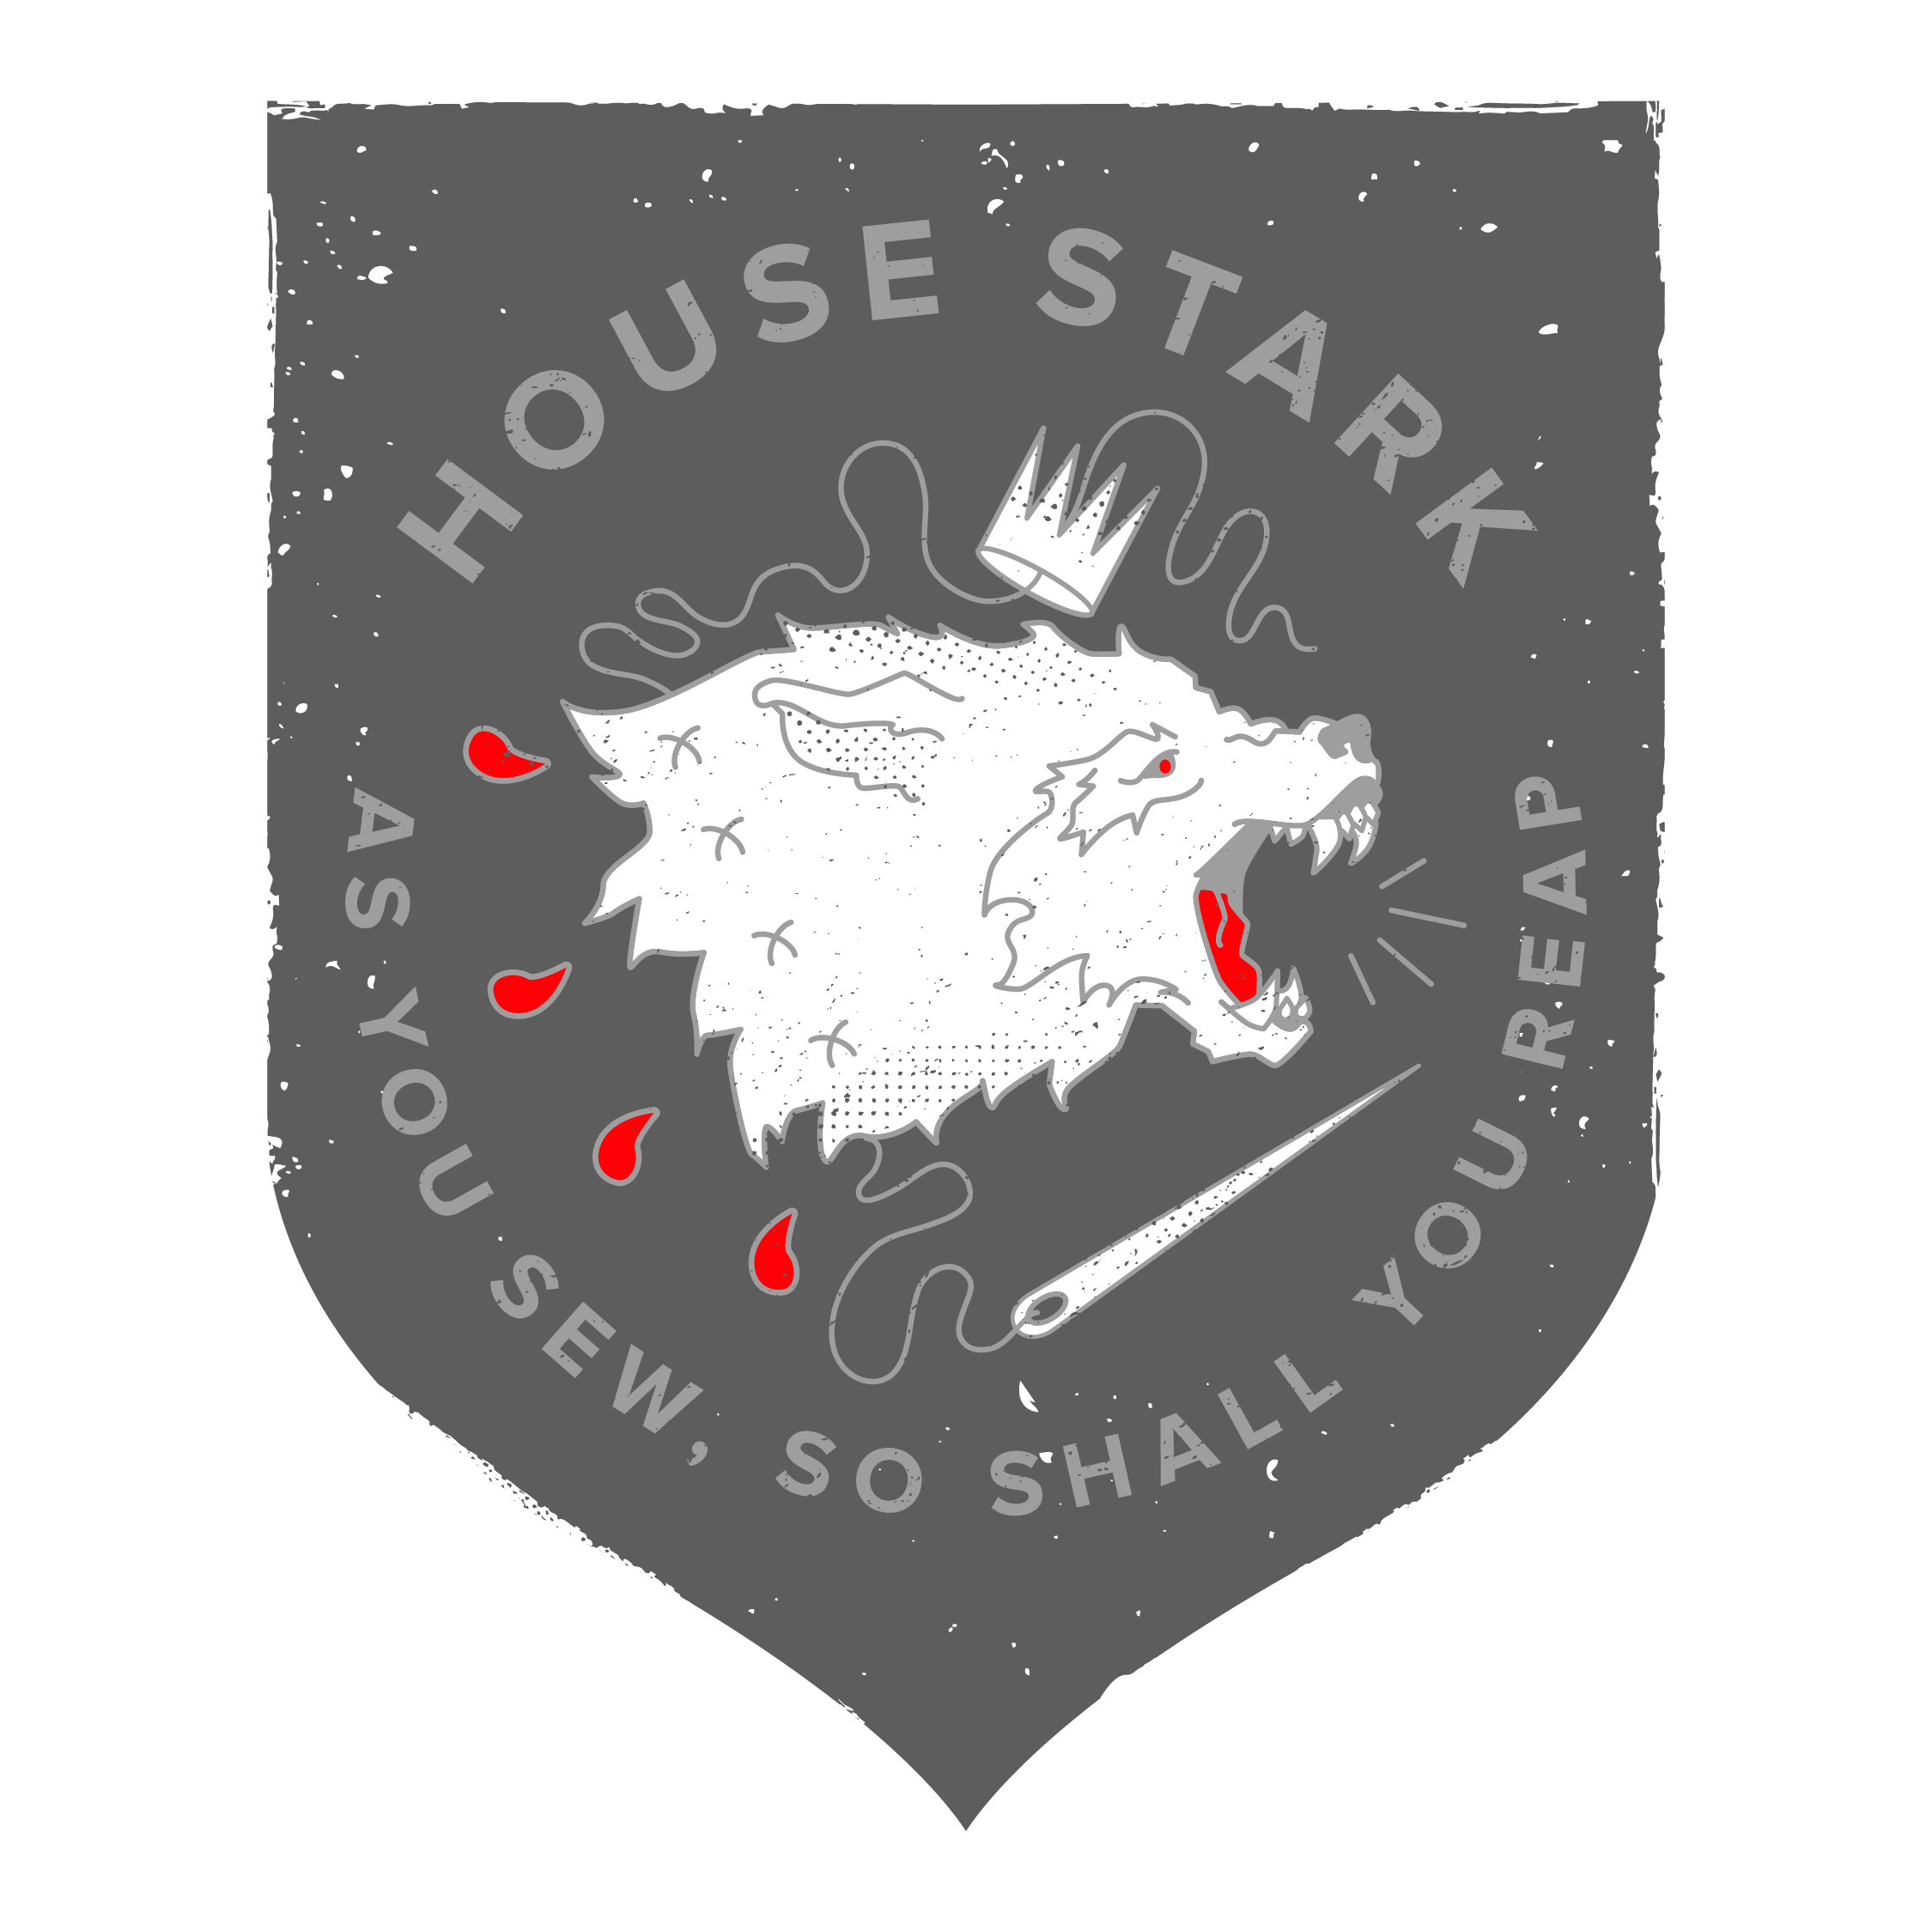 STARKS_1080X1080-01.png